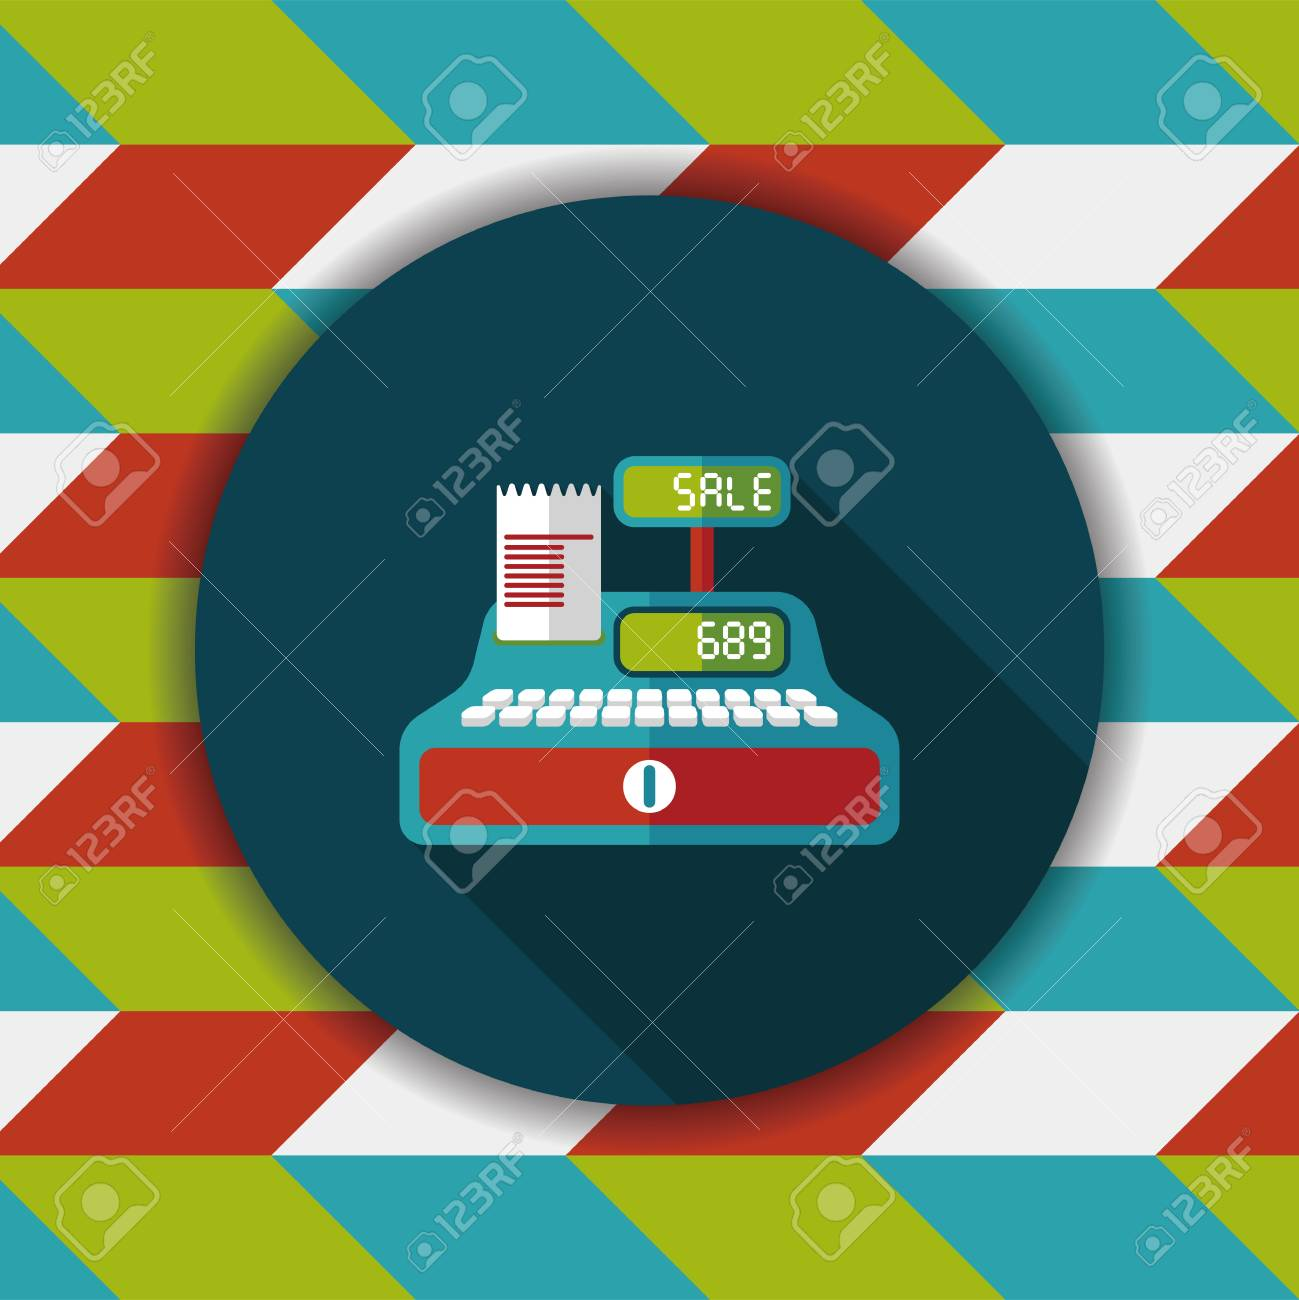 shopping cash register flat icon with long shadow - 56930507